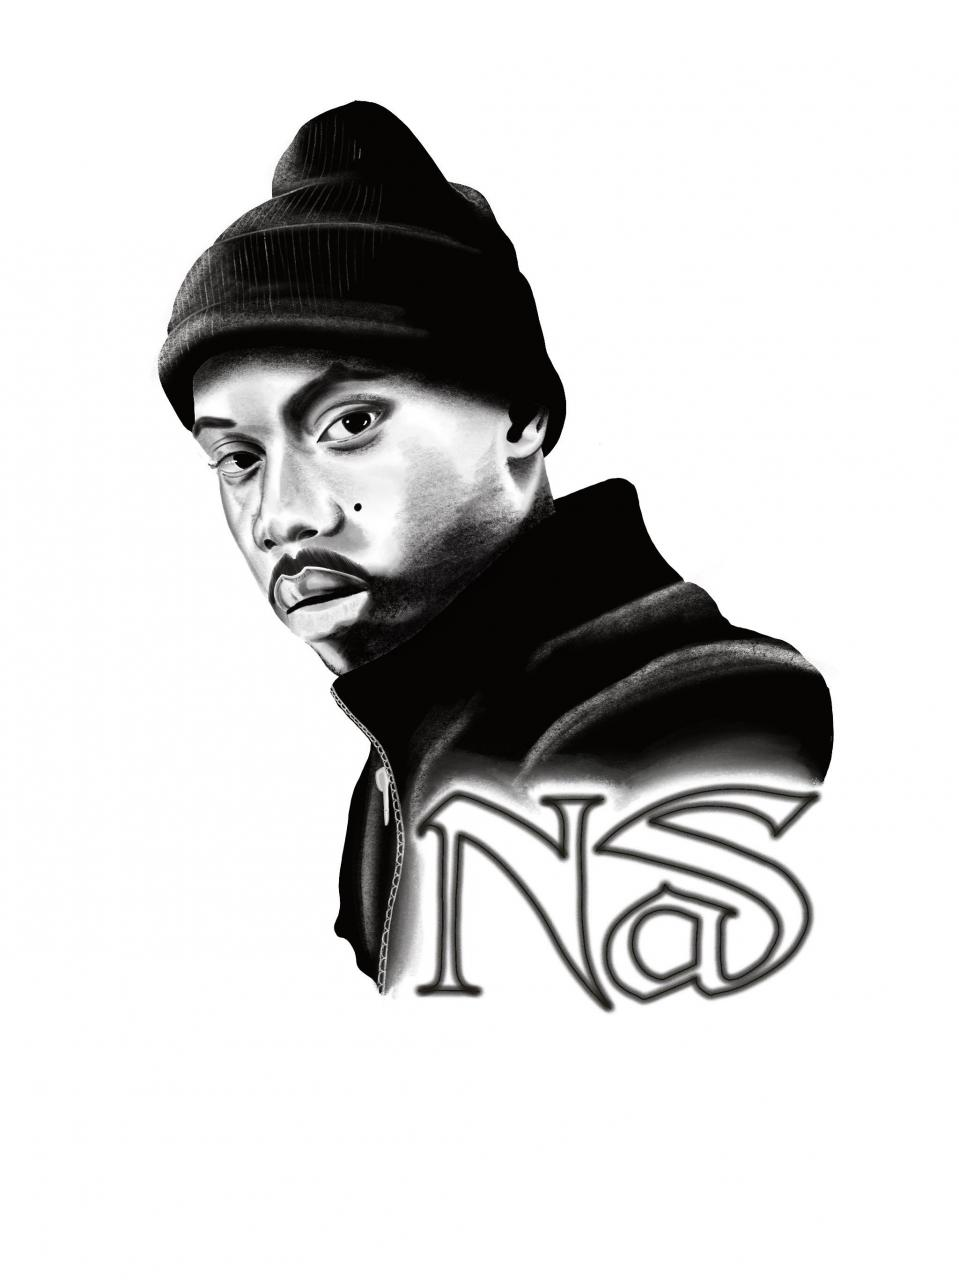 Did a little nas piece,I hope to be doing a lot of hip hop inspired tattoos like this when I'm ready! Don't see enough of these